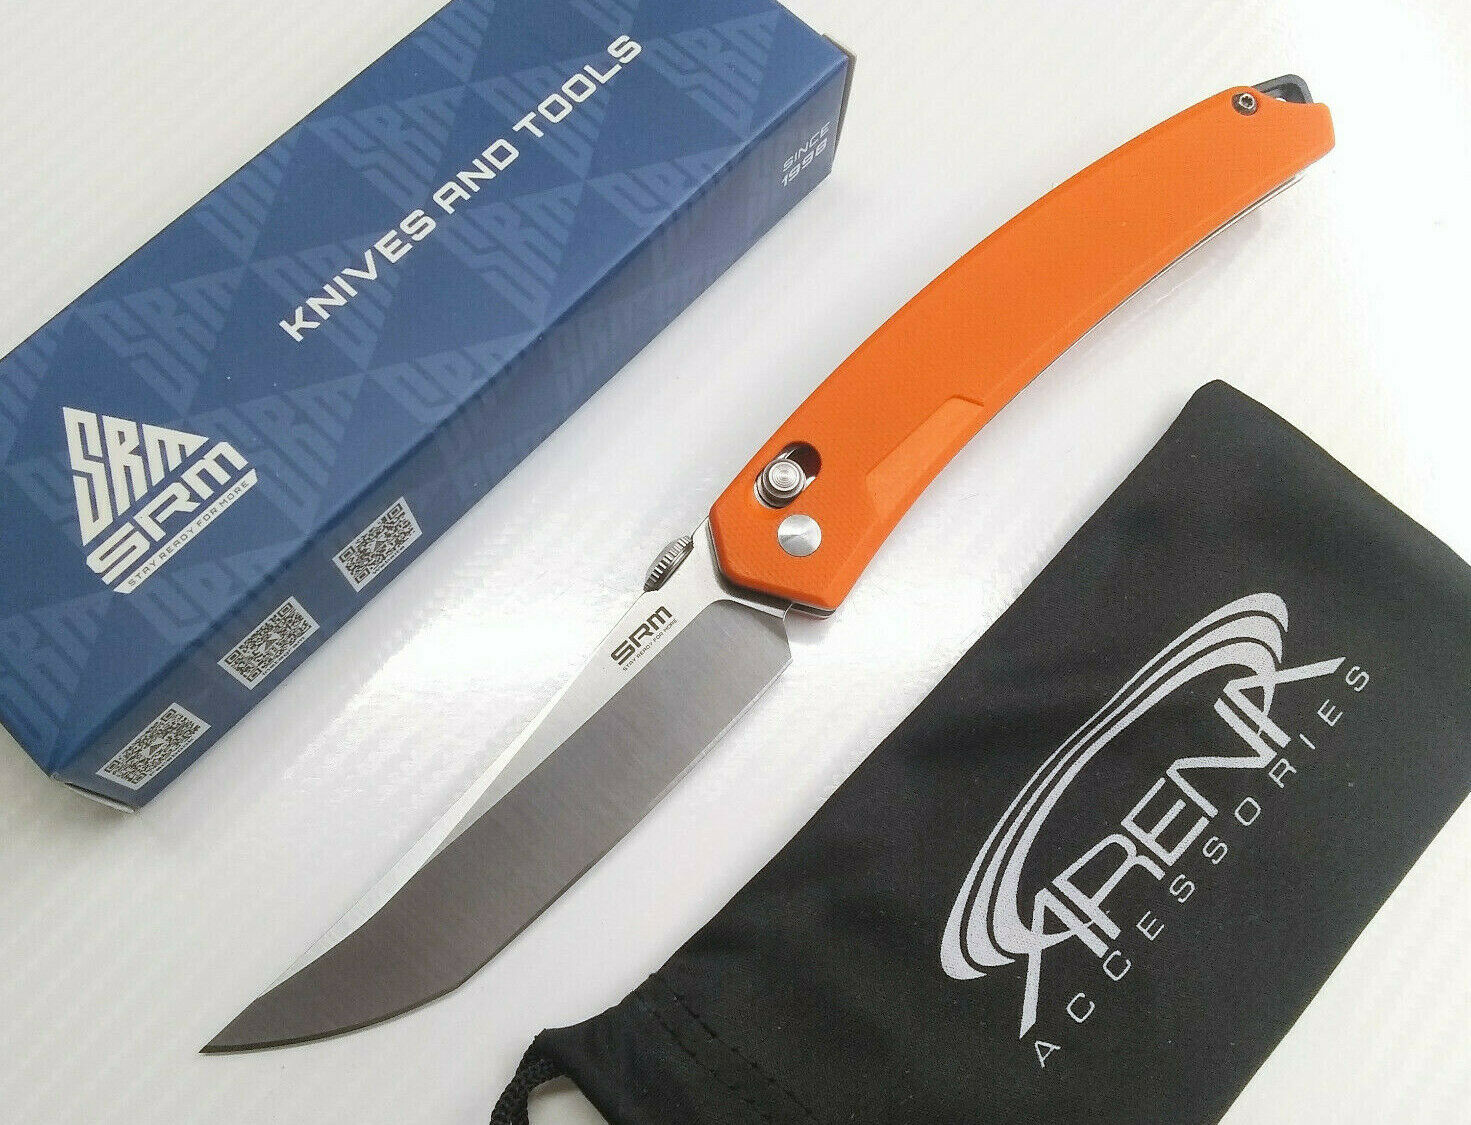 SRM 9211GJ Slim Gentleman Pocket Knife Axis Lock 8Cr13MoV Blade Orange G10 Sanrenmu